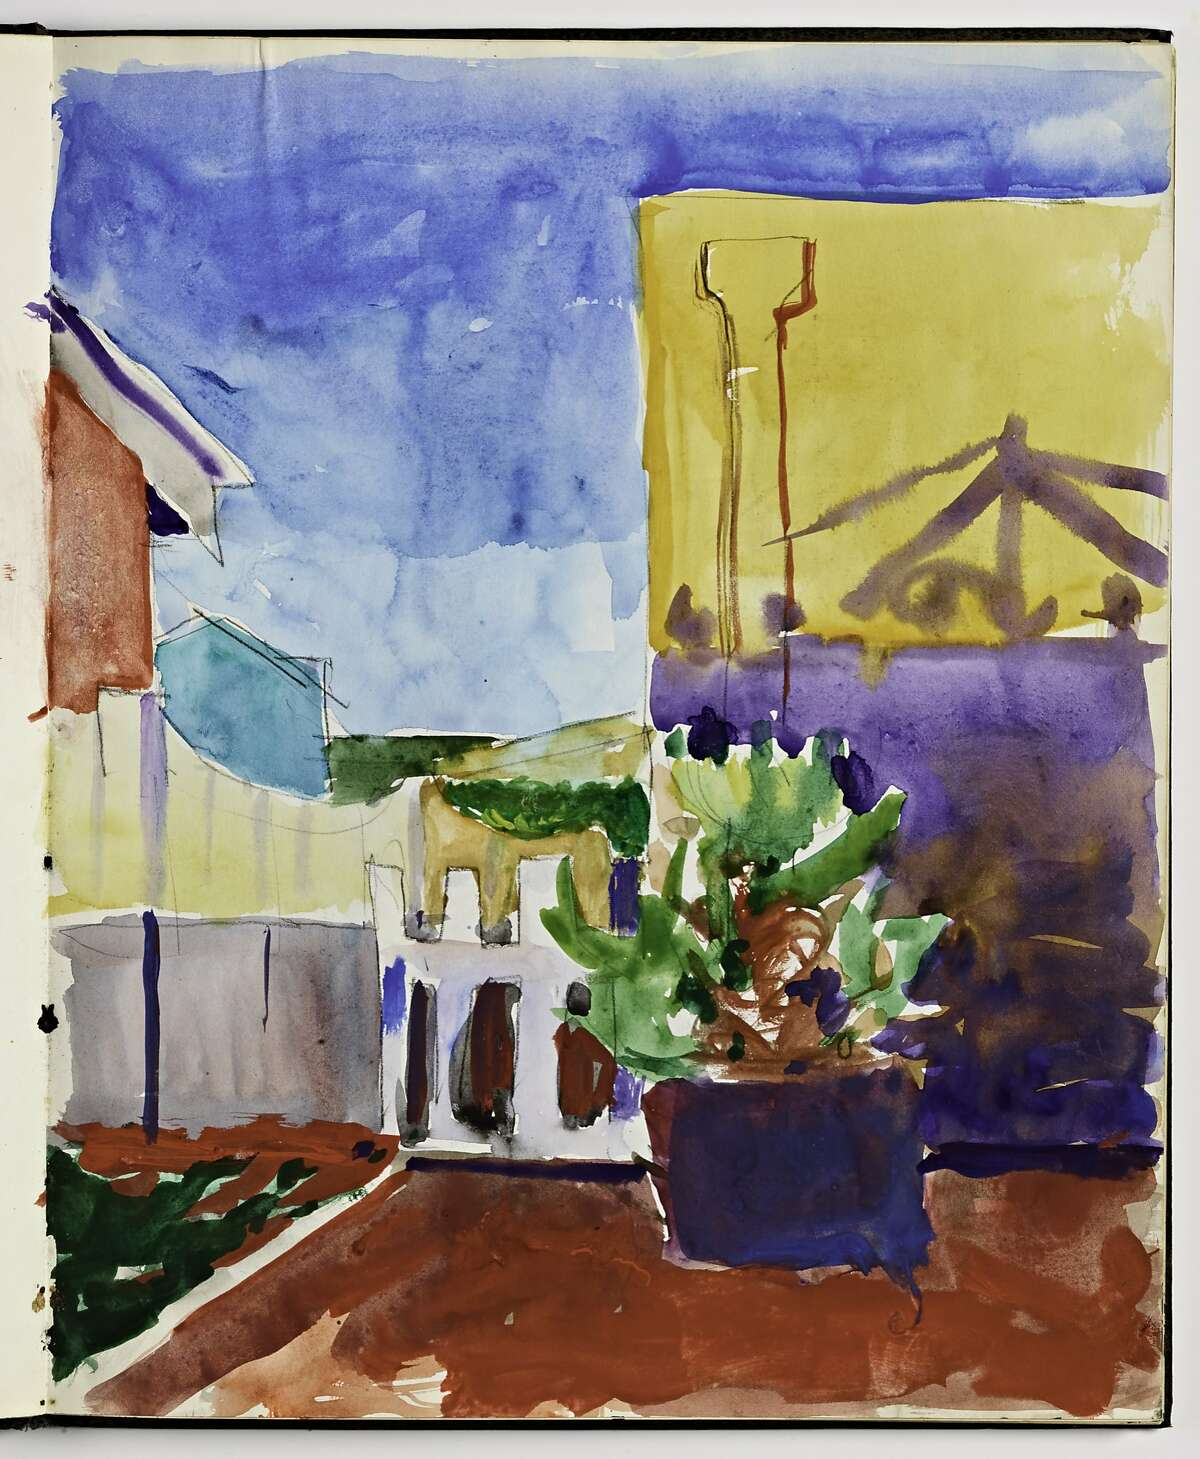 Untitled (Potted plant with buildings), (c. 1955-1967) Watercolor and graphite on paper by Richard Diebenkorn